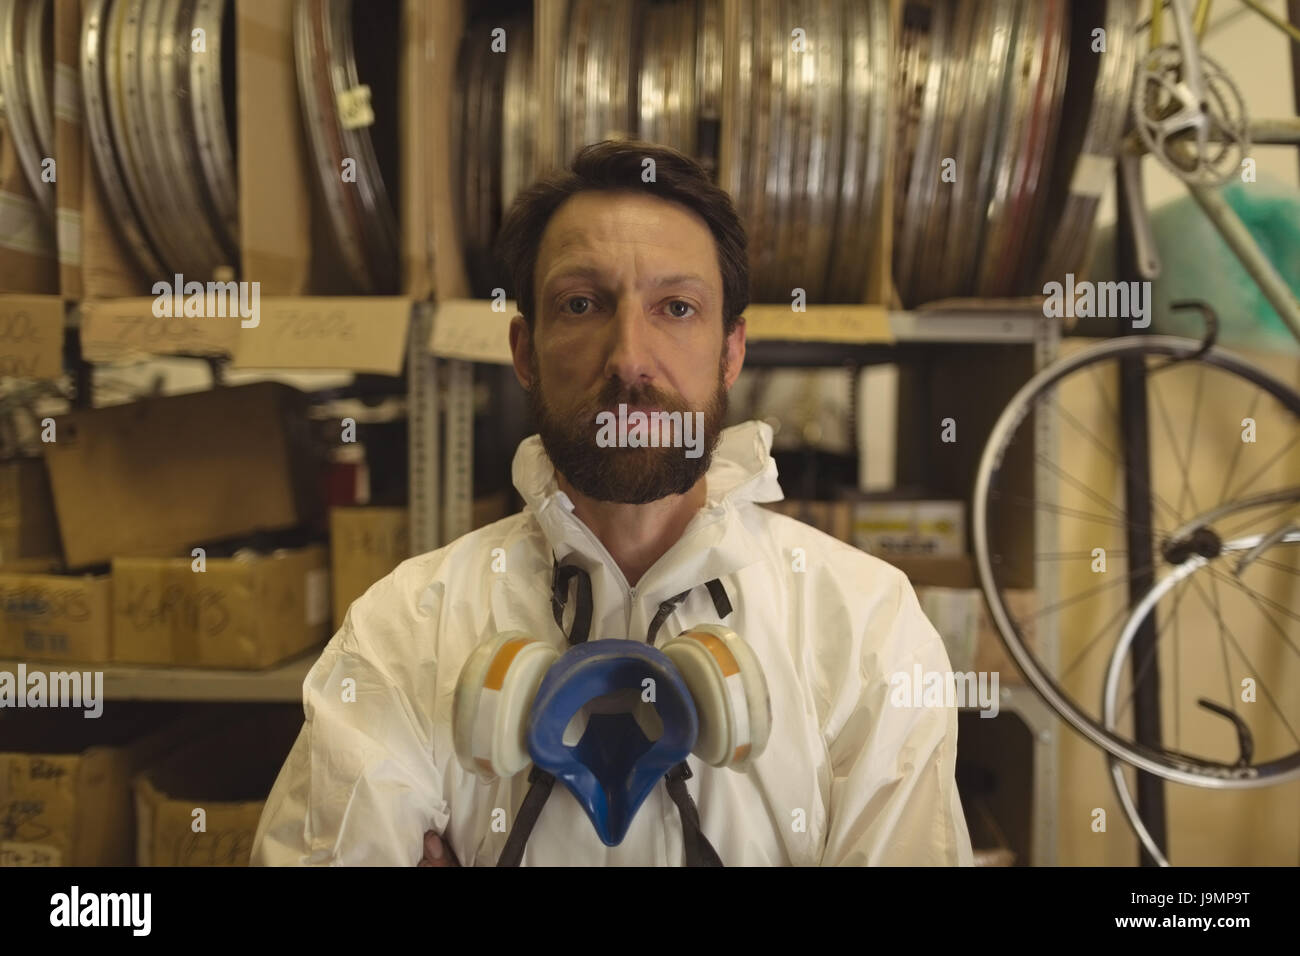 Portrait of painter with gas mask staning at bicycle workshop - Stock Image